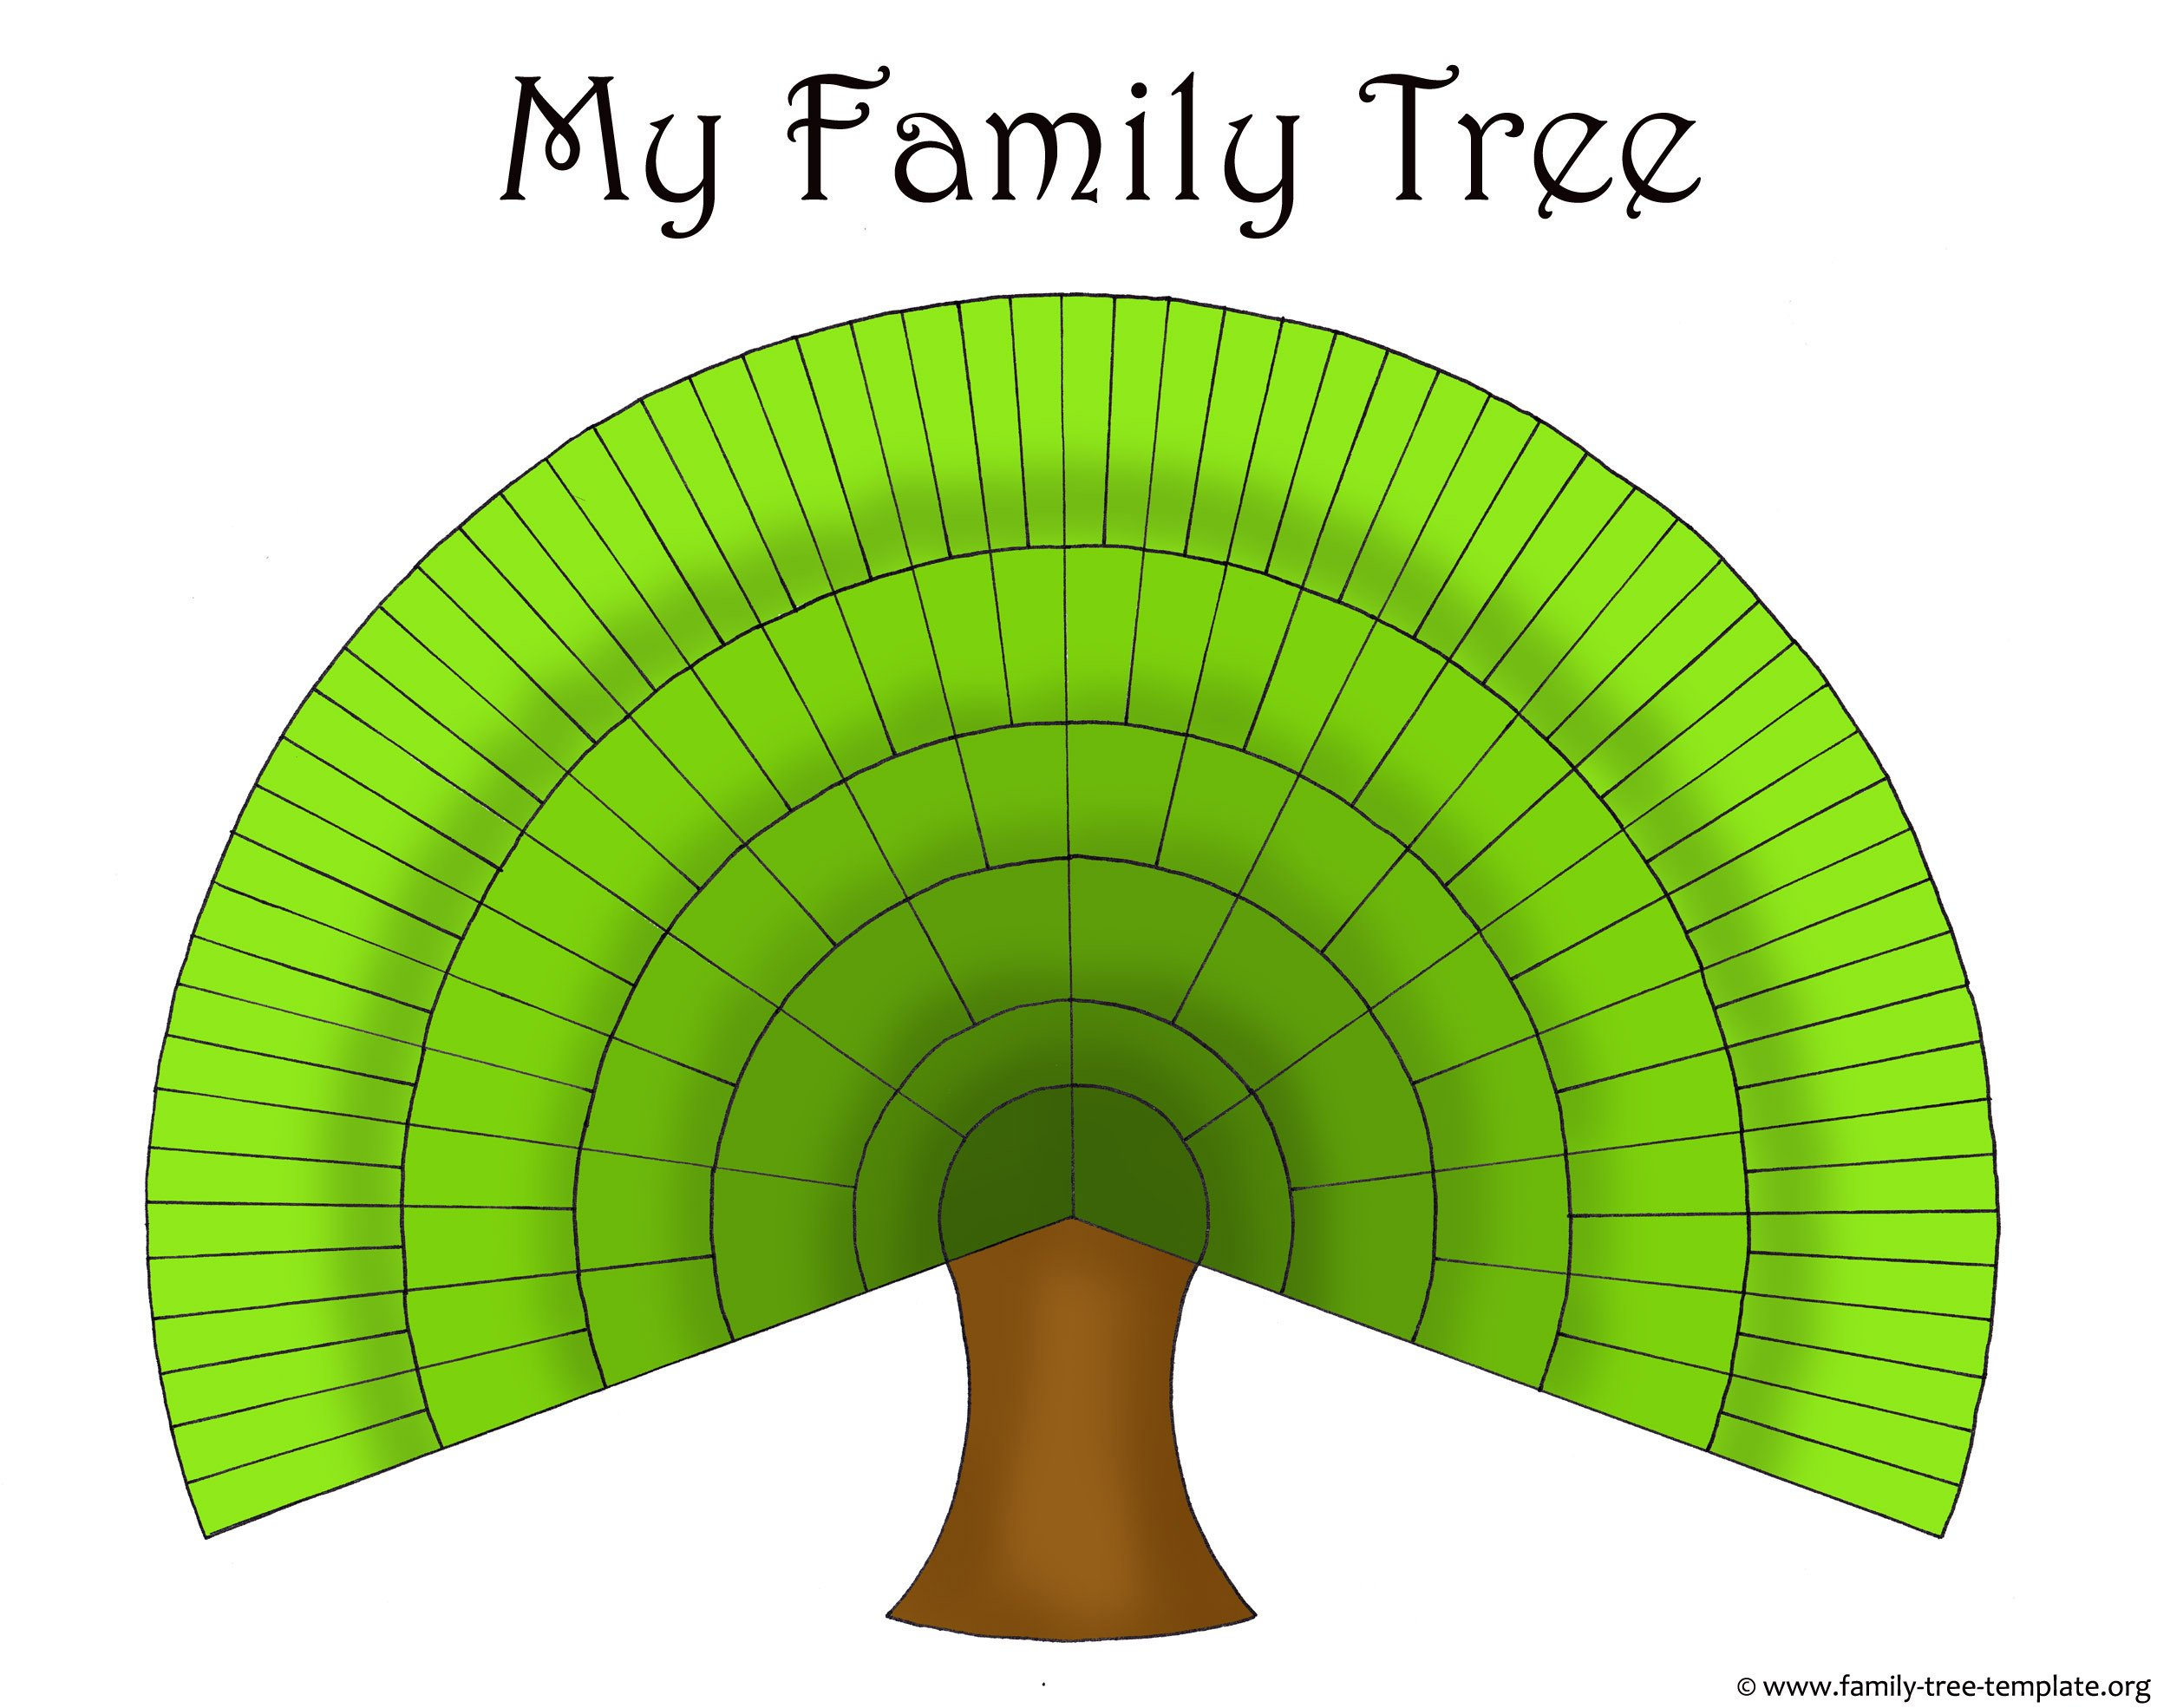 Large Family Tree Templates Blank Family Trees Templates and Free Genealogy Graphics